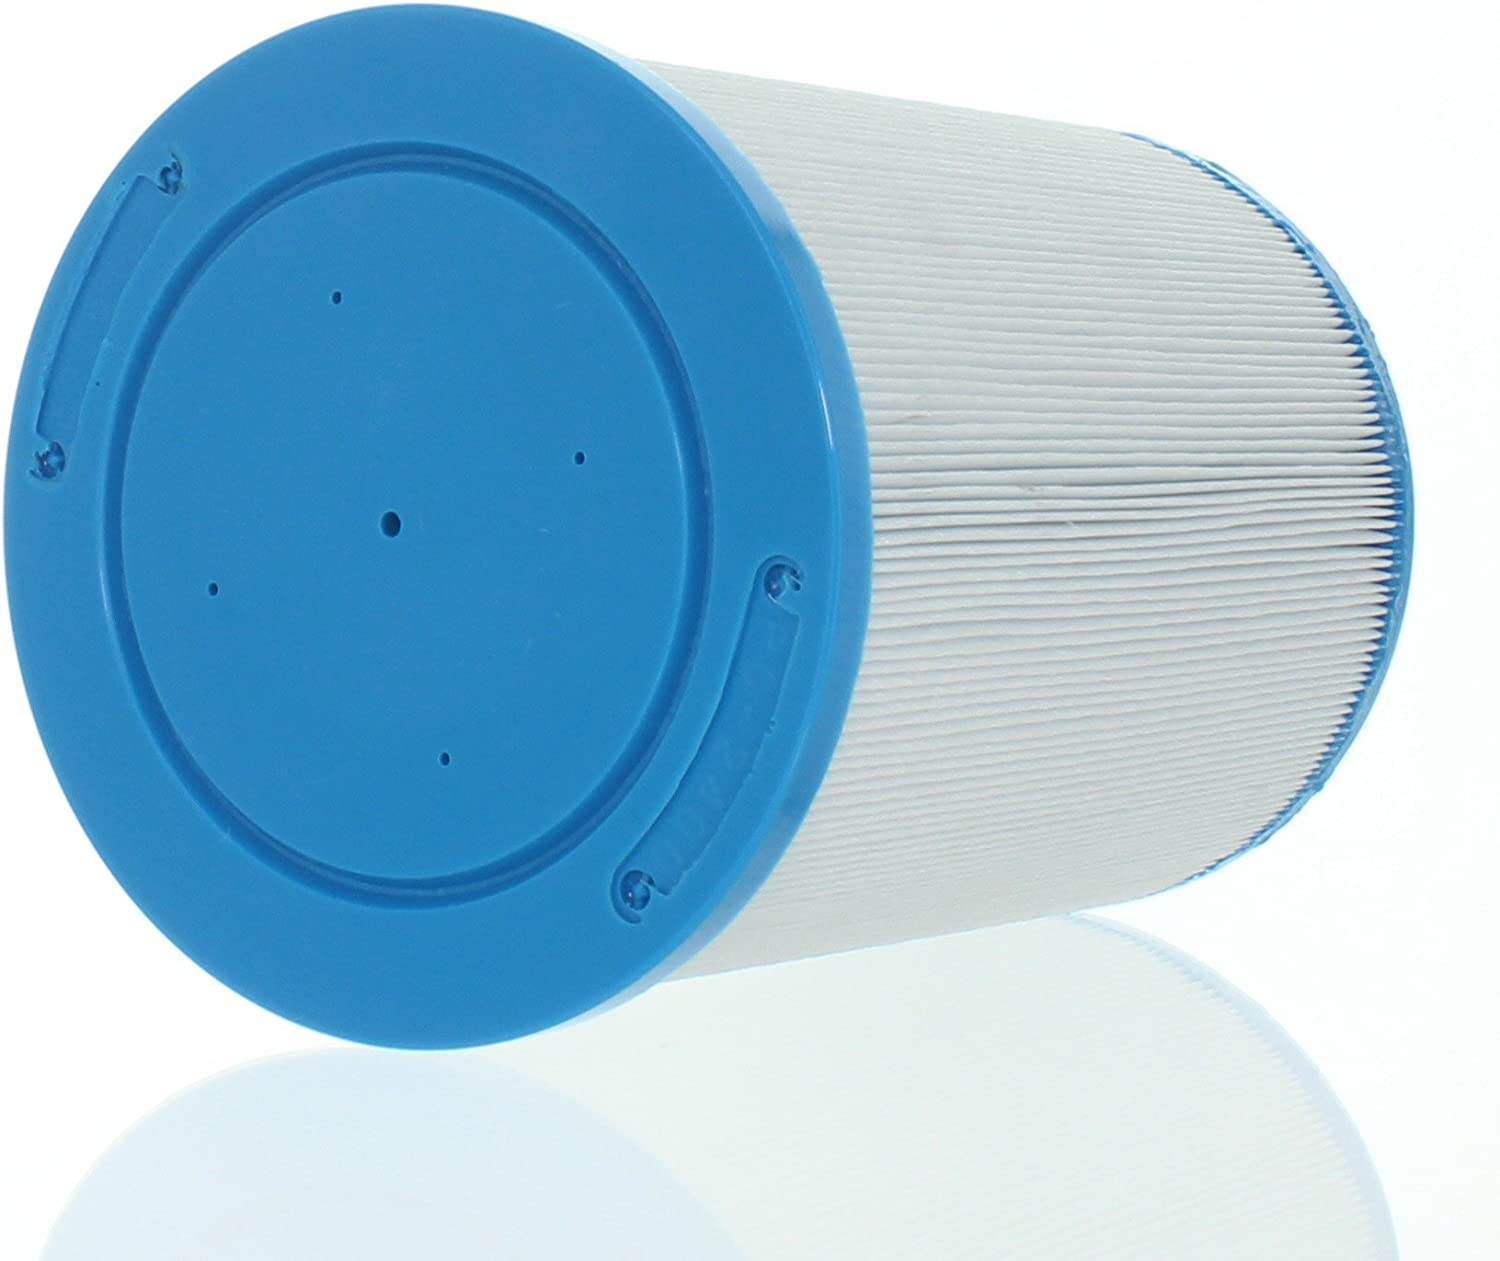 Filter Replacement for Pall HC9020FUS8Z Filter RADWELL VERIFIED SUBSTITUTE HC9020FUS8Z-SUB Pressure LINE Hydraulic Filter Cartridge